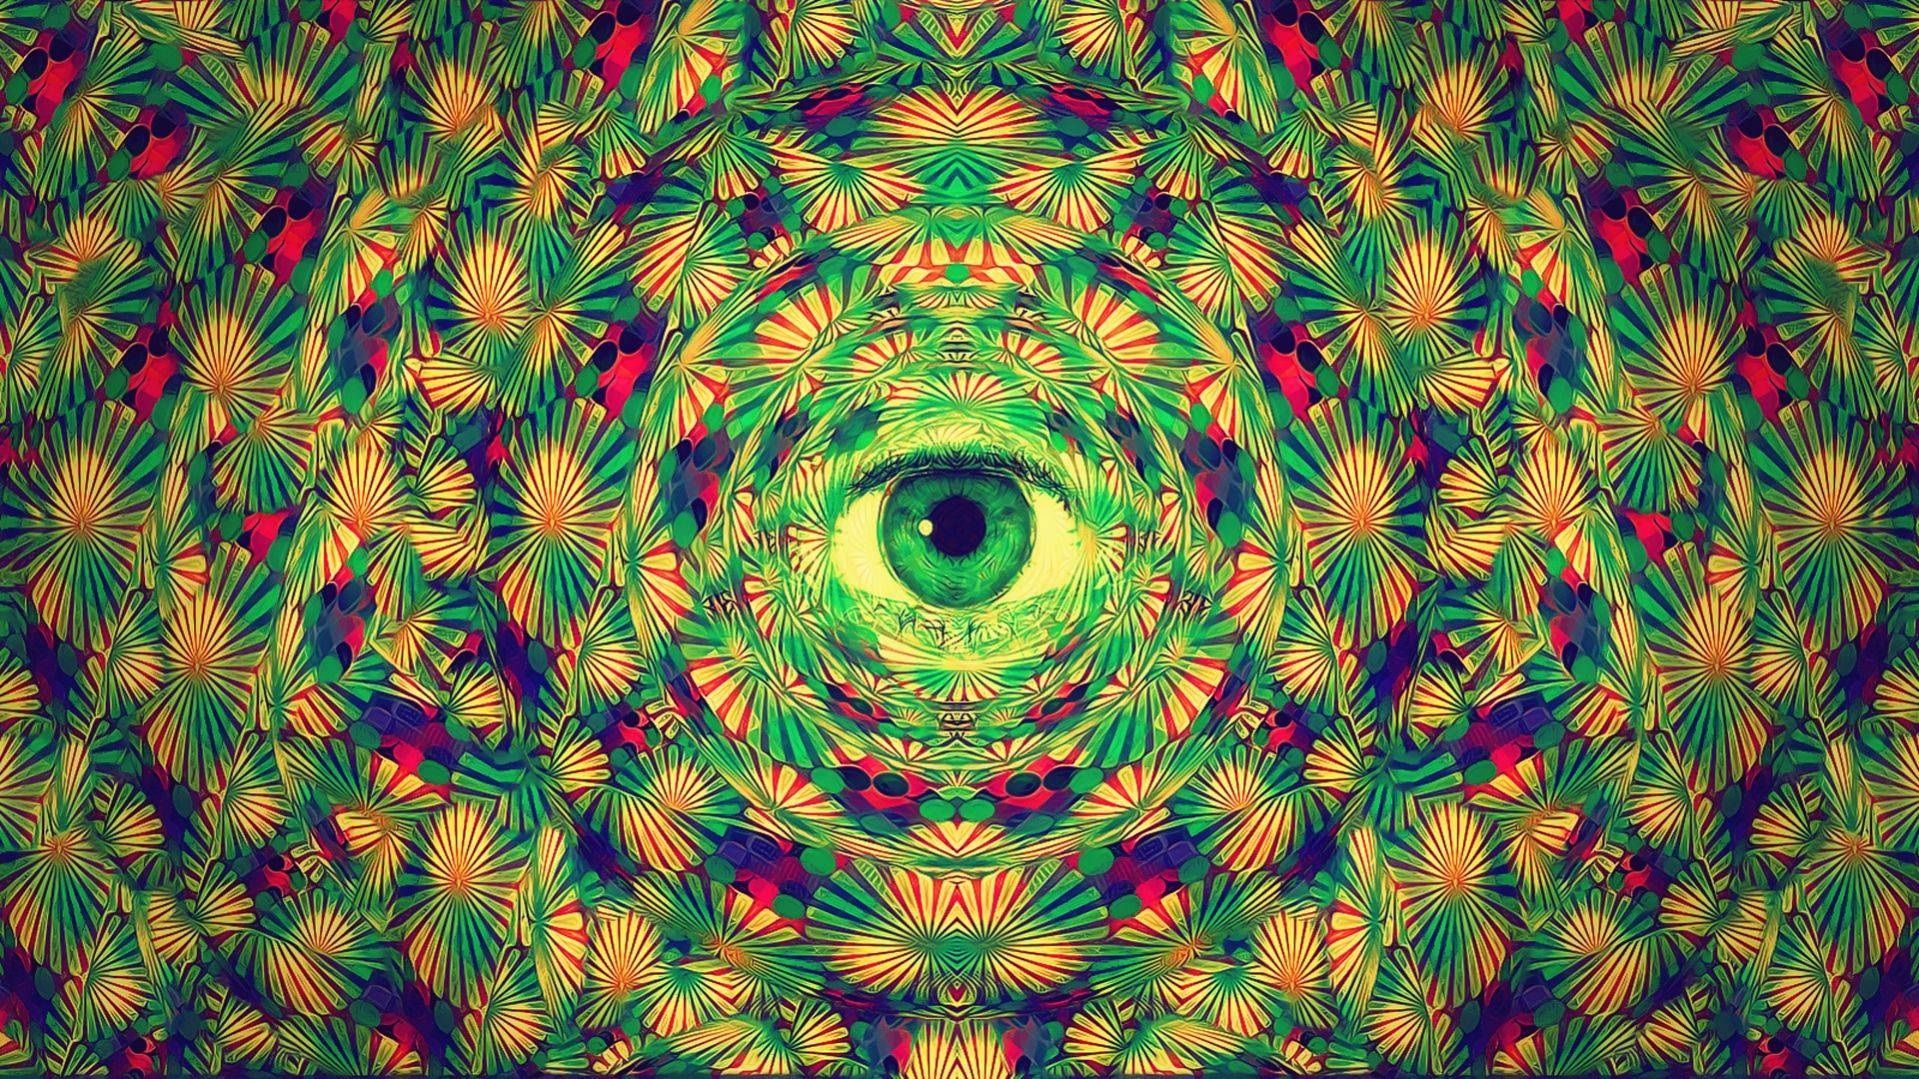 Trippy Alien Desktop Wallpapers Top Free Trippy Alien